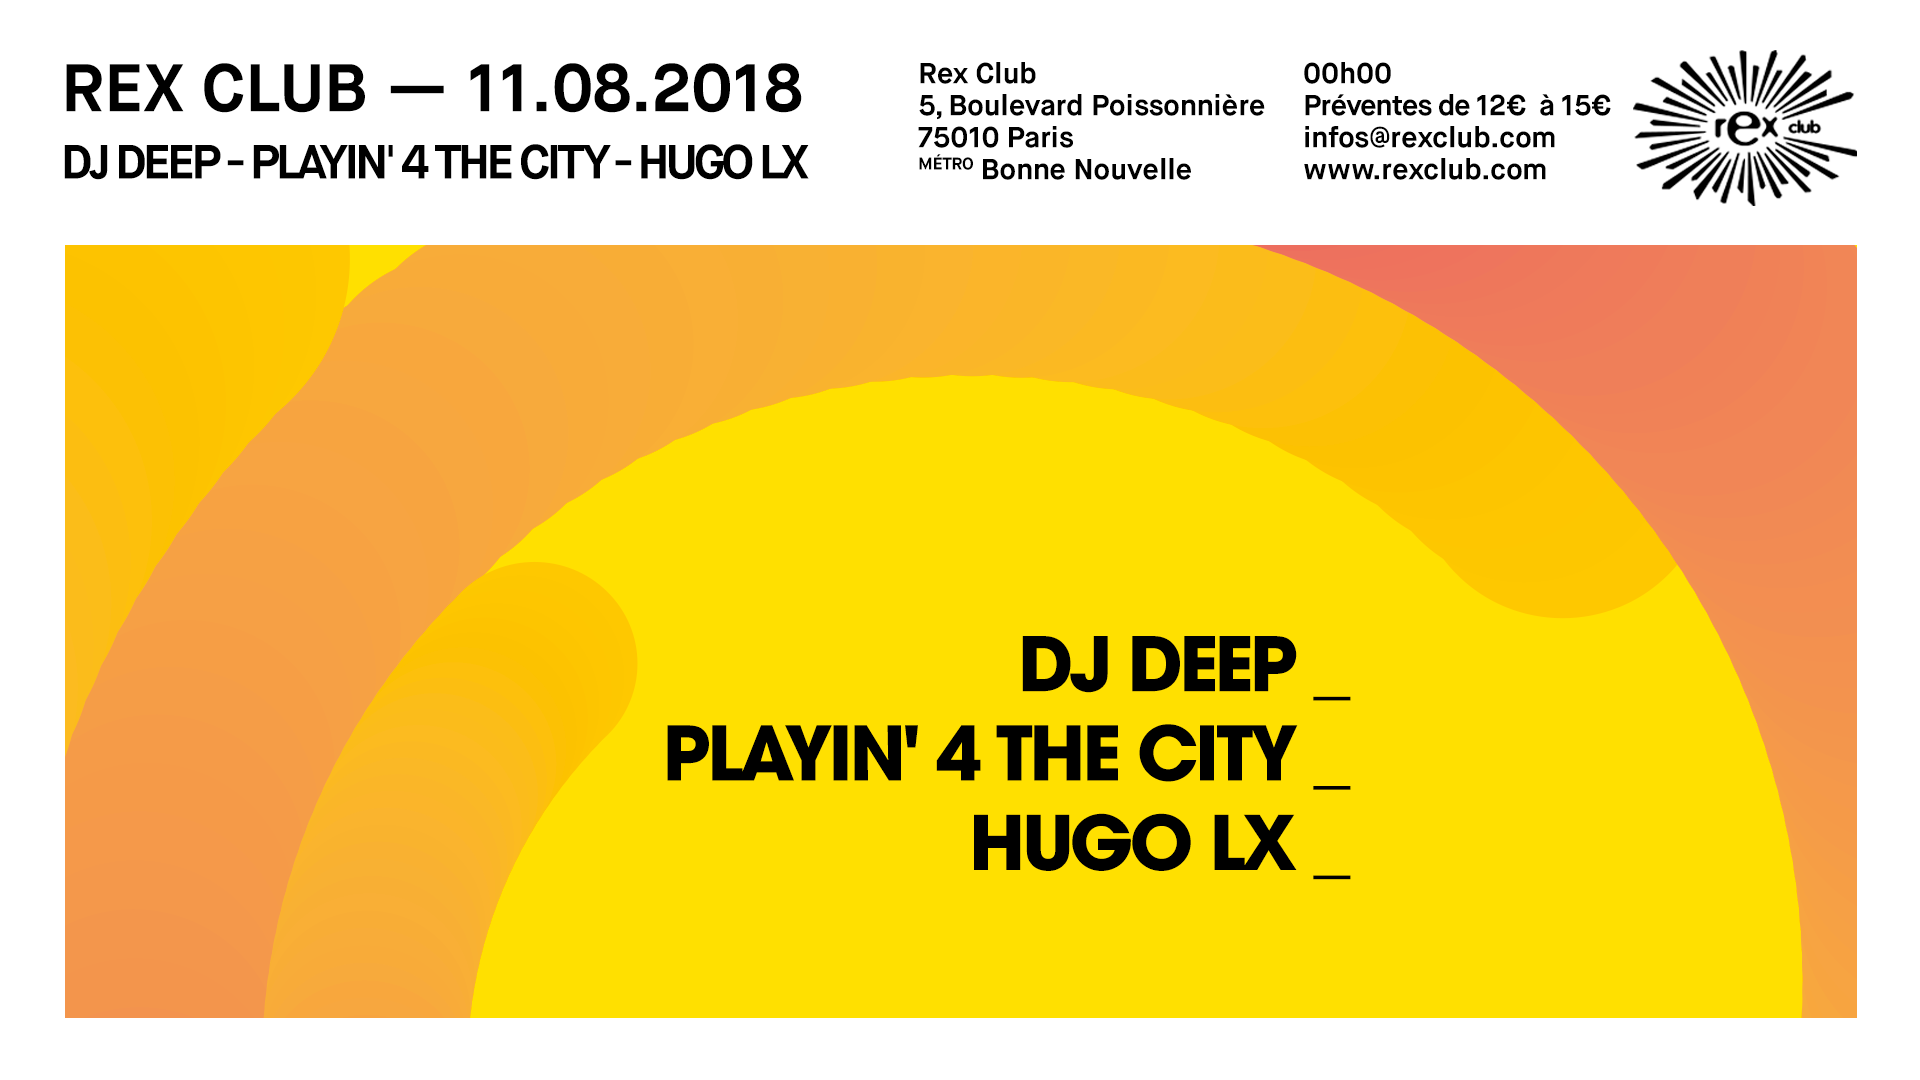 20180811_rex_club_presente_dj_deep_facebook_event_banner_1920x1080